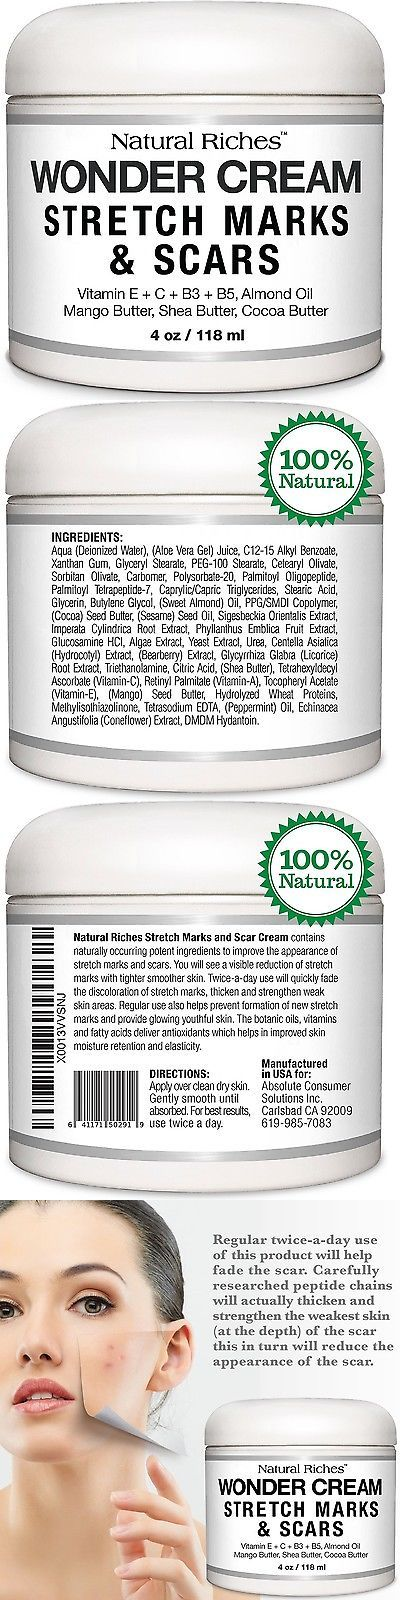 Scar and Stretch Mark Reducers: Stretch Marks And Scar Removal Cream From Natural Riches - 4 Oz - 100% Natural ... -> BUY IT NOW ONLY: $300 on eBay!